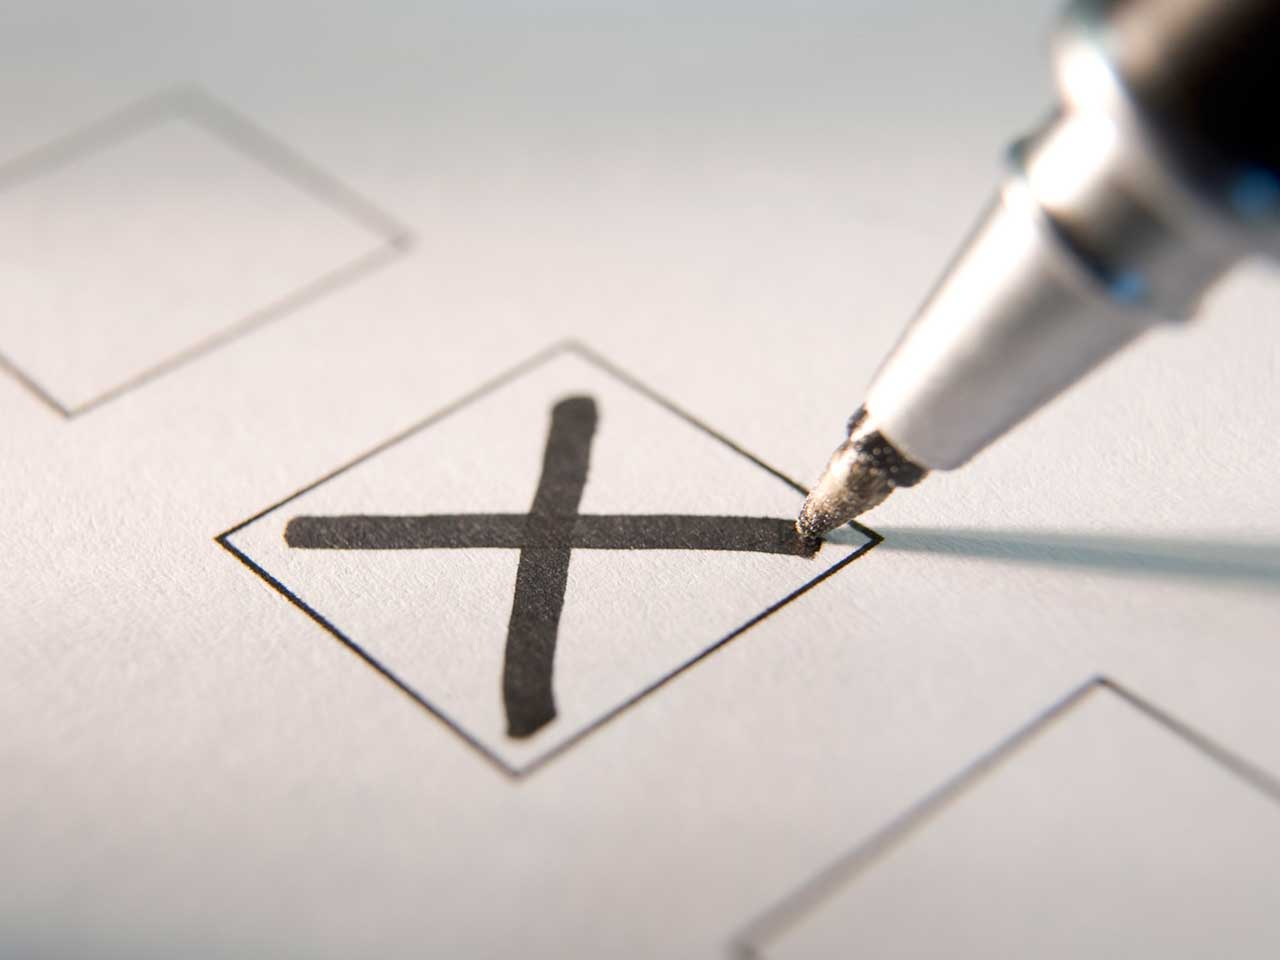 Ballot paper with pen marking a cross